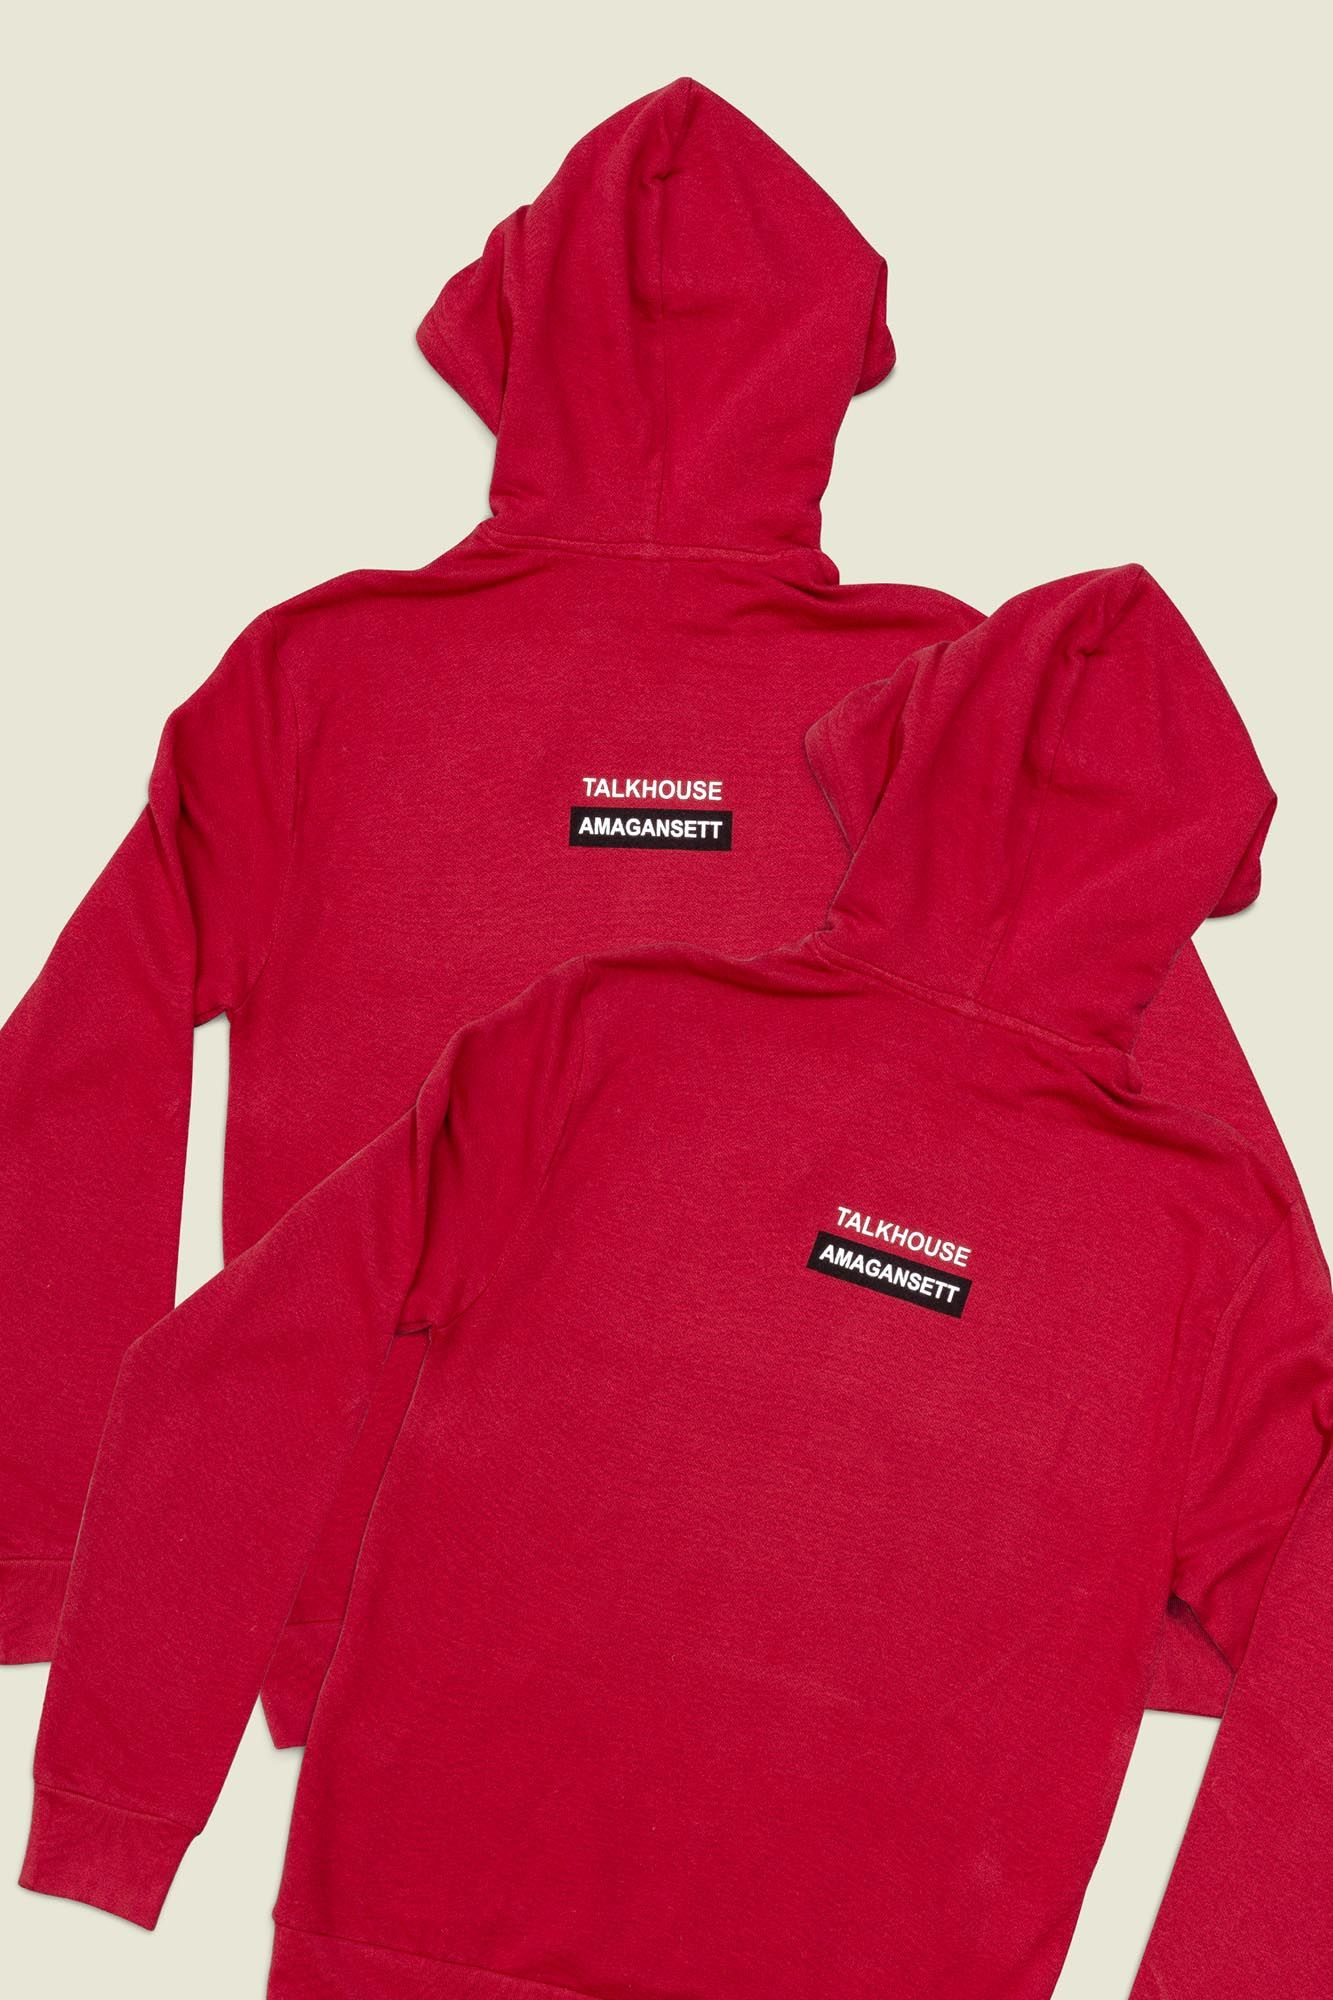 Red pullover hoodies